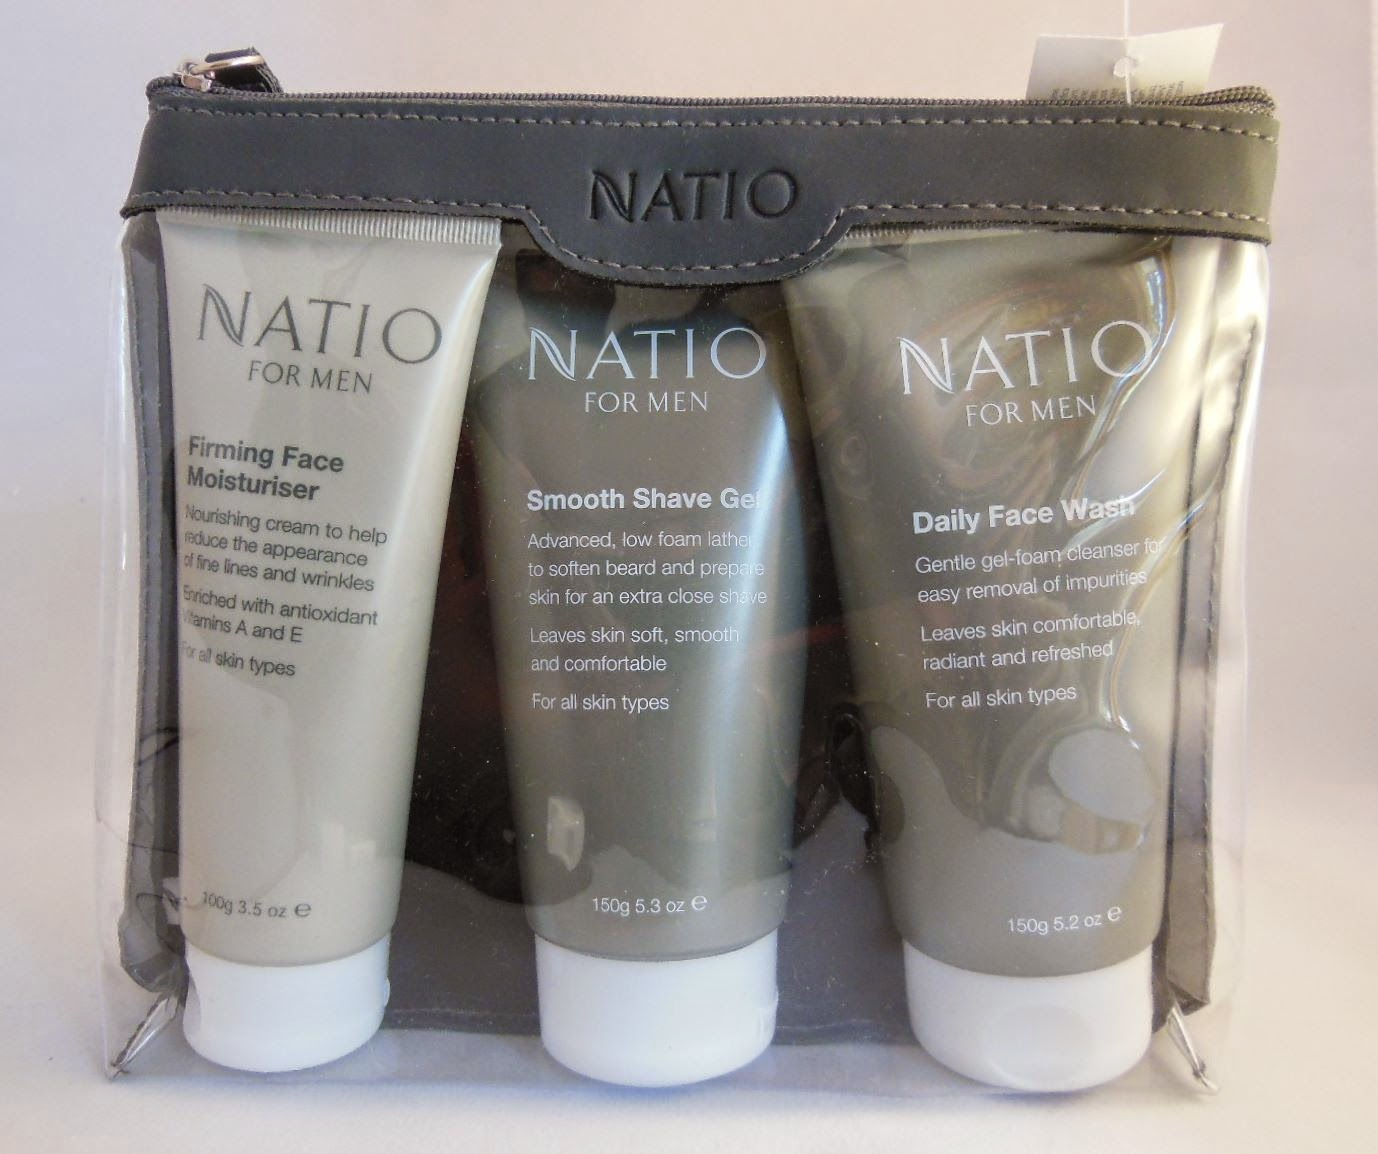 Over 100 Fathers Day Gift Ideas: FATHER'S DAY GIFT IDEAS FROM NATIO